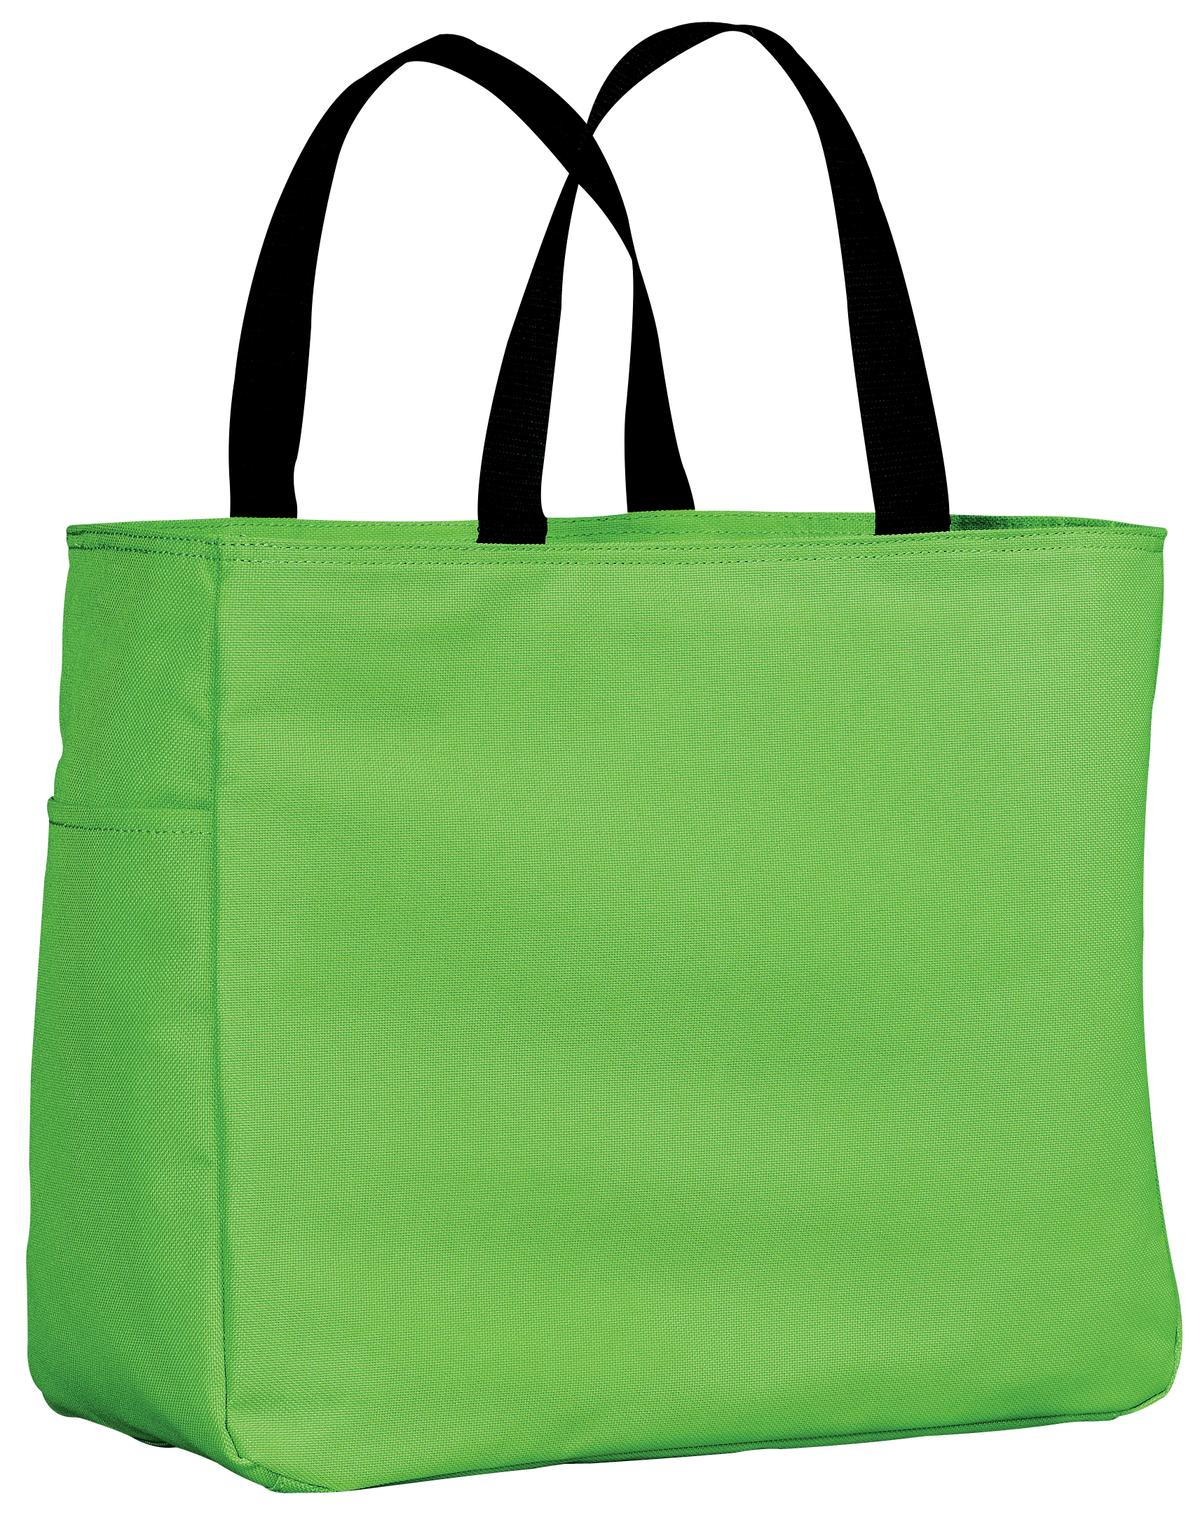 Port Authority ®  -  Essential Tote.  B0750 - Bright Lime